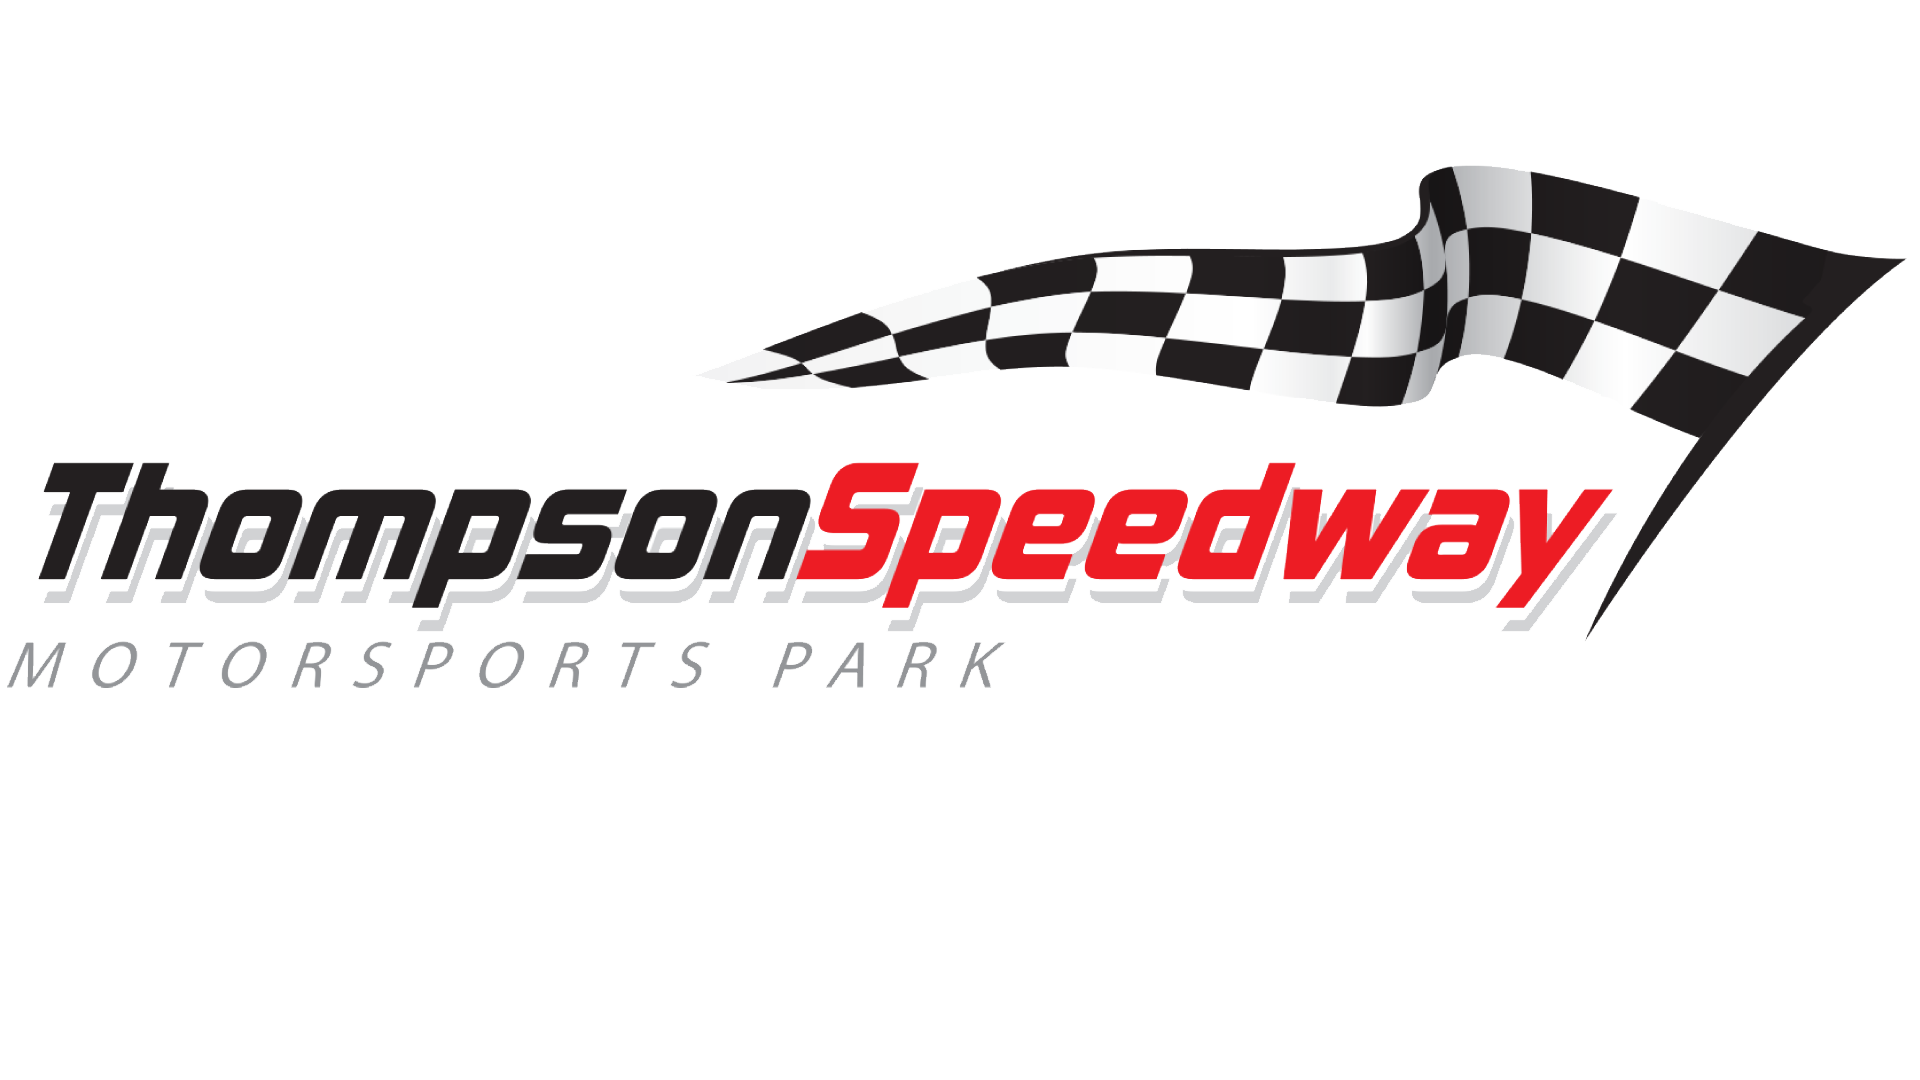 20141217085344-thompson-speedway-logo.png